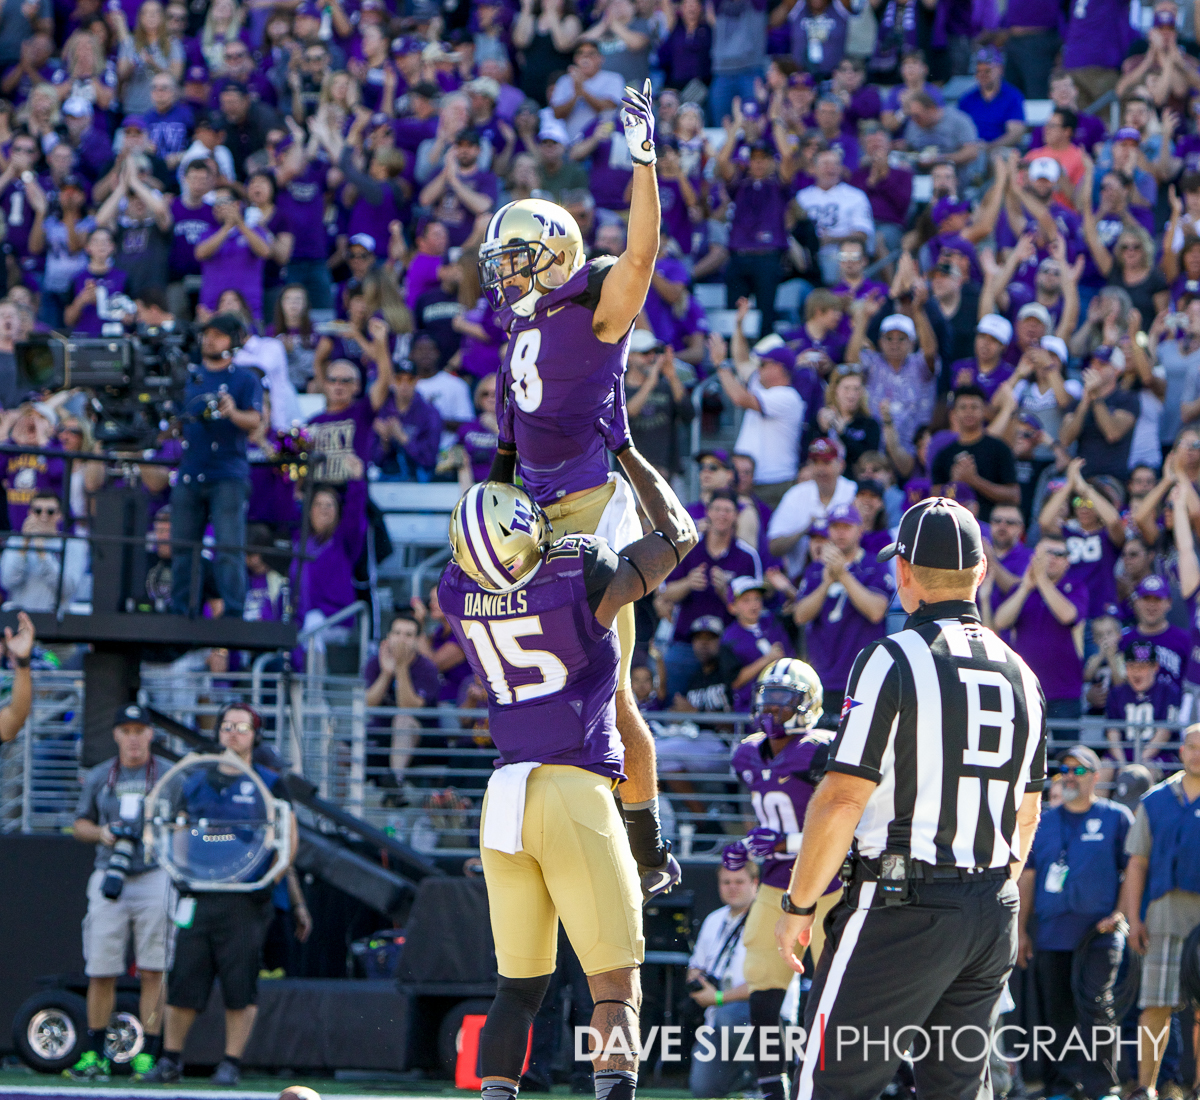 Darrell Daniels lifts up Dante Pettis after a touchdown.